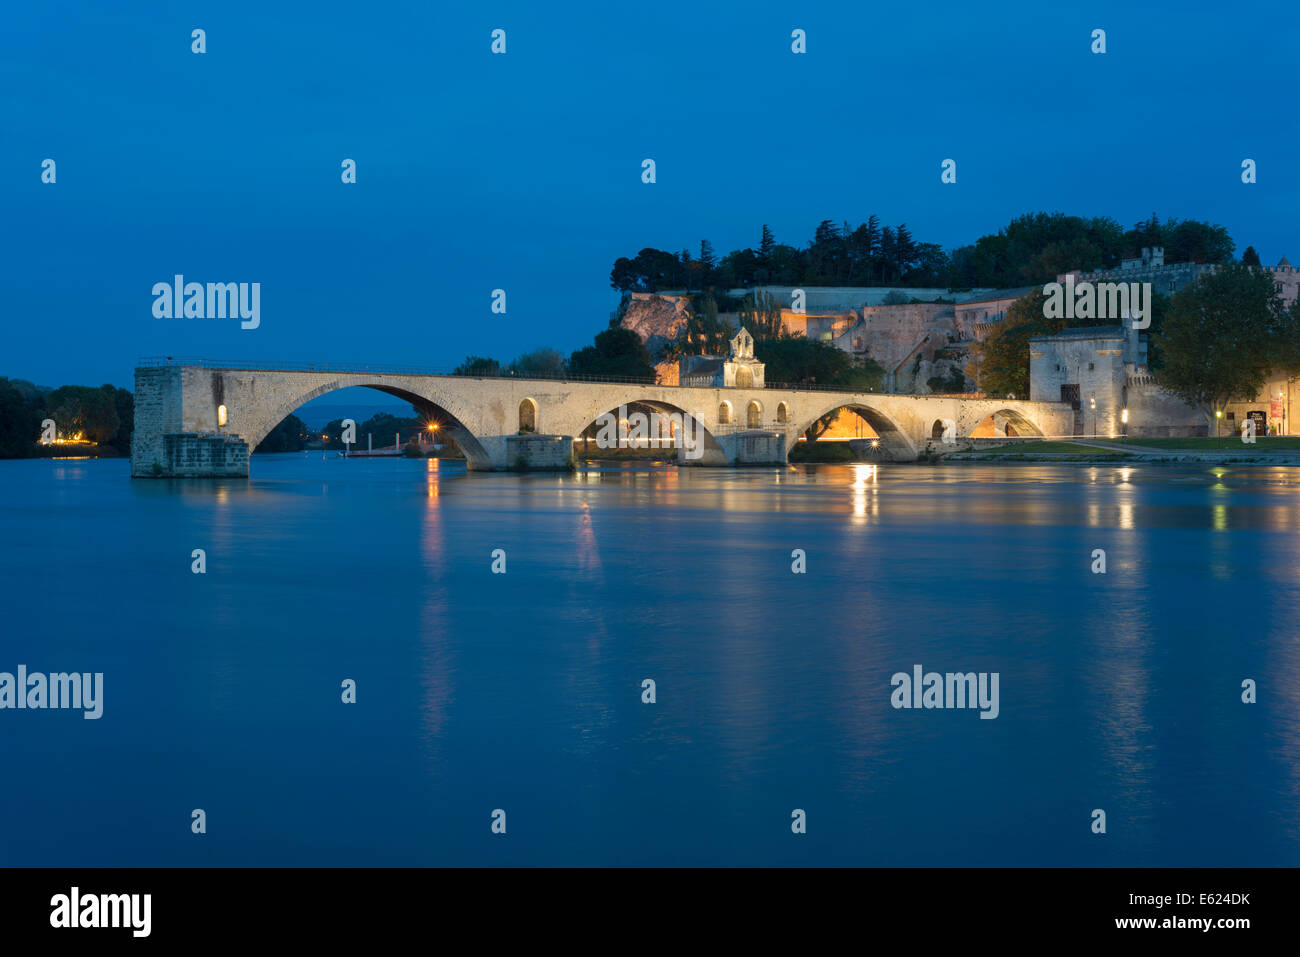 Rhône with the Pont Saint-Bénézet bridge, also known as Pont d'Avignon, Rocher des Doms rock - Stock Image